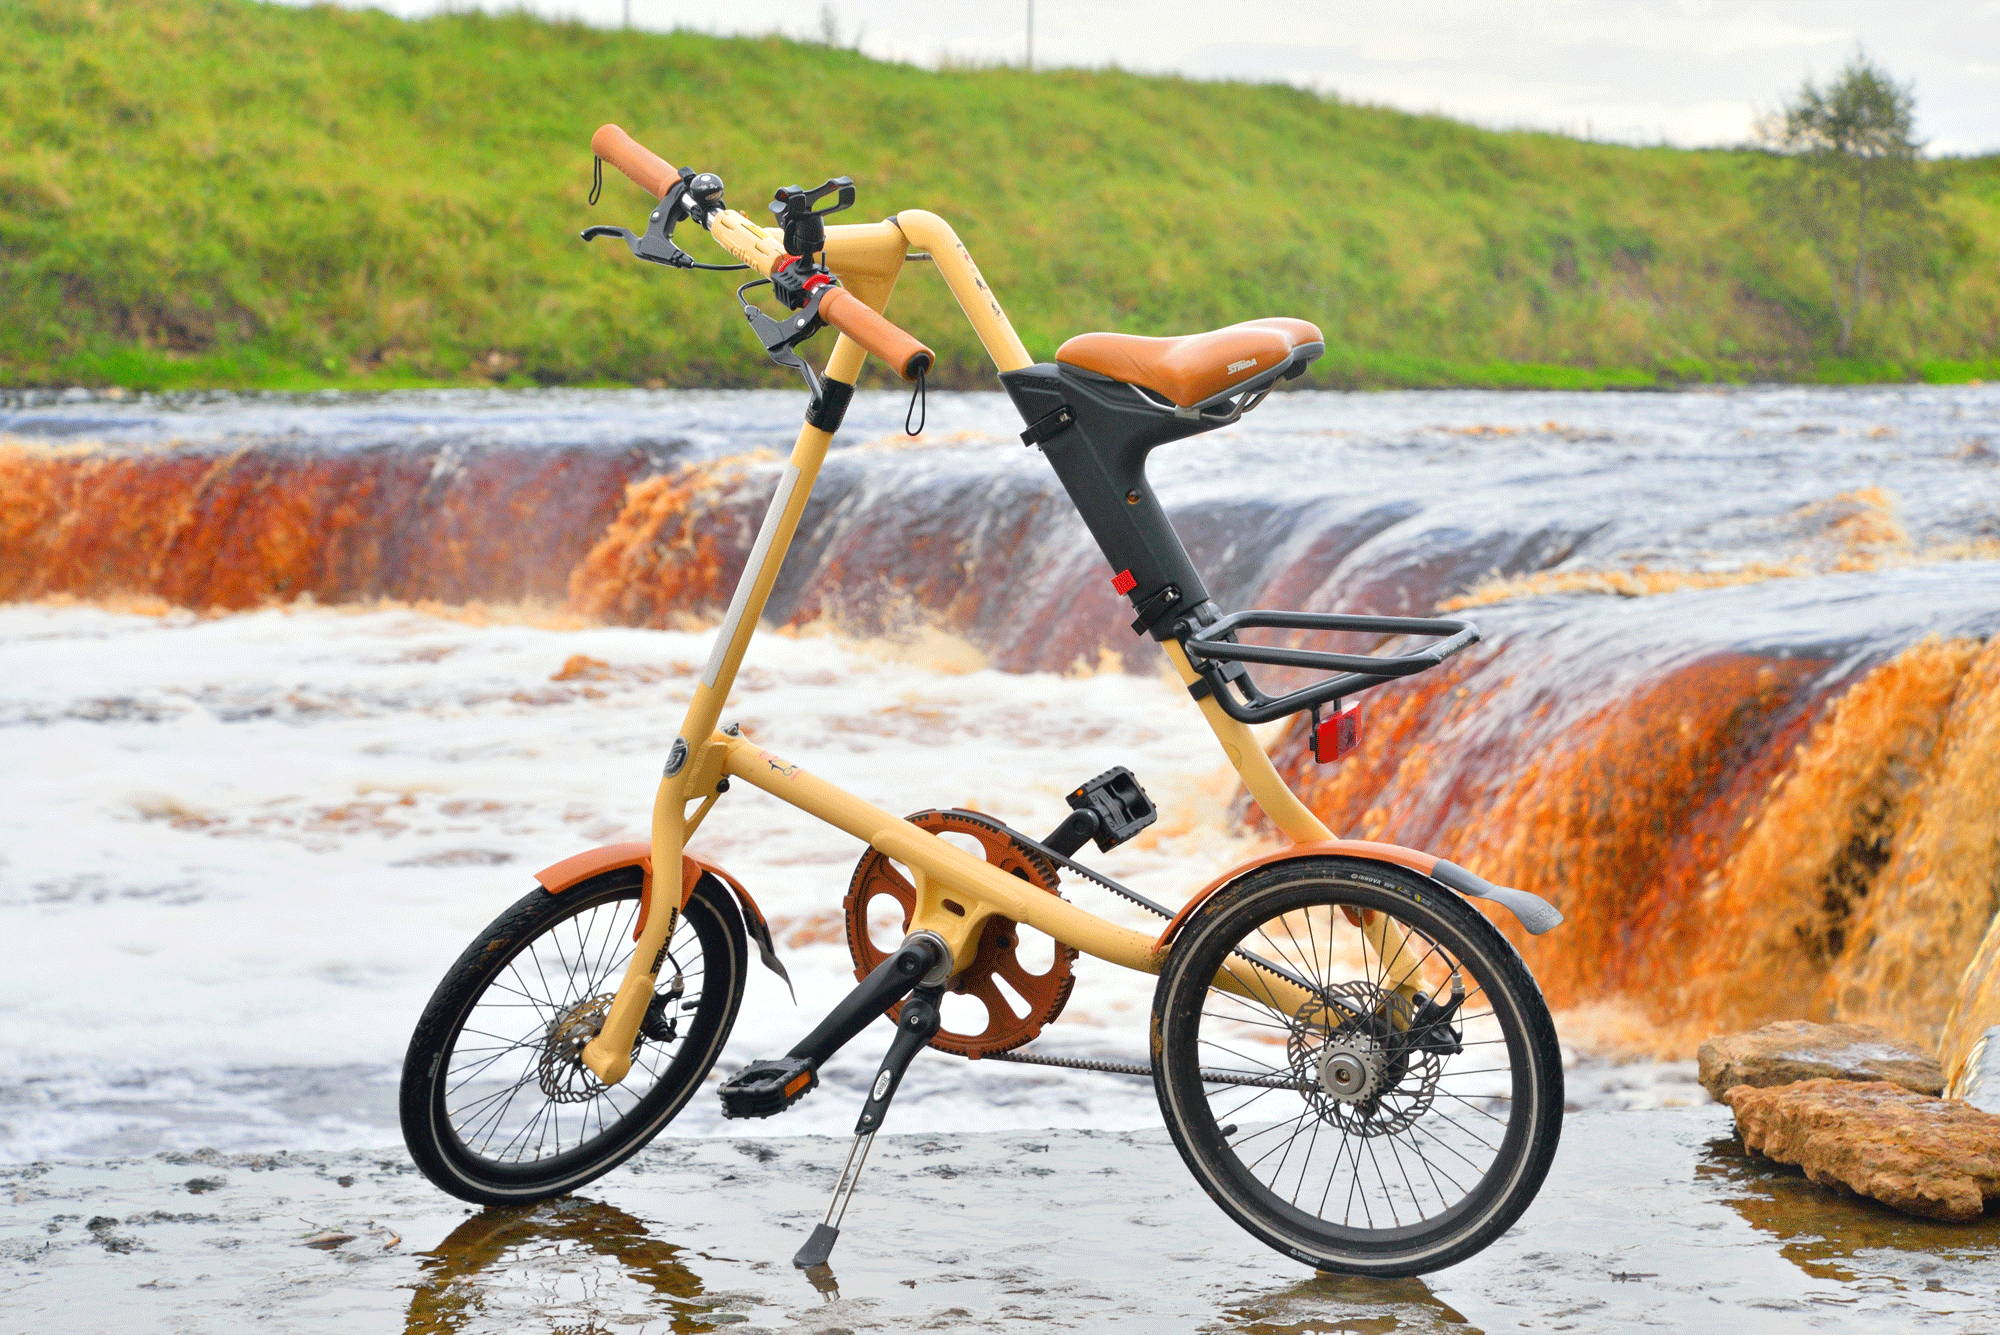 STRiDA Bike